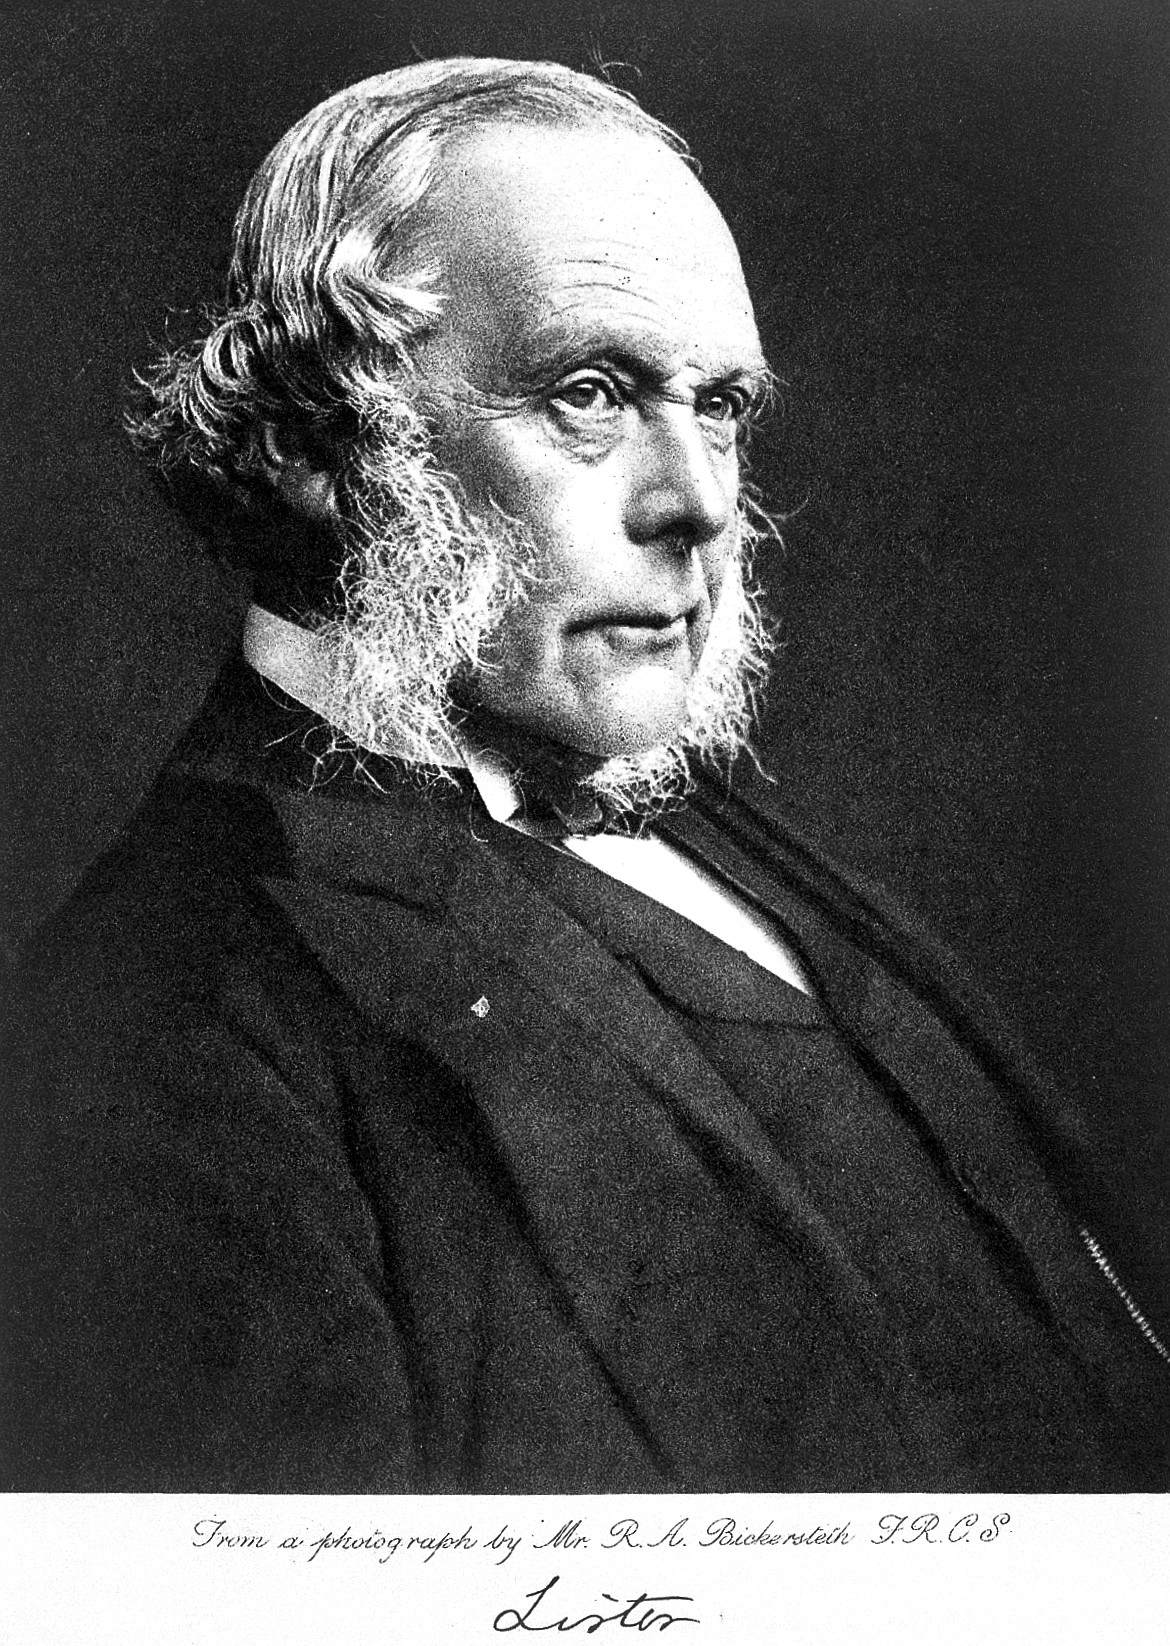 Black and white photograph of Joseph Lister, an English man in a suit with bushy white muttonchops.